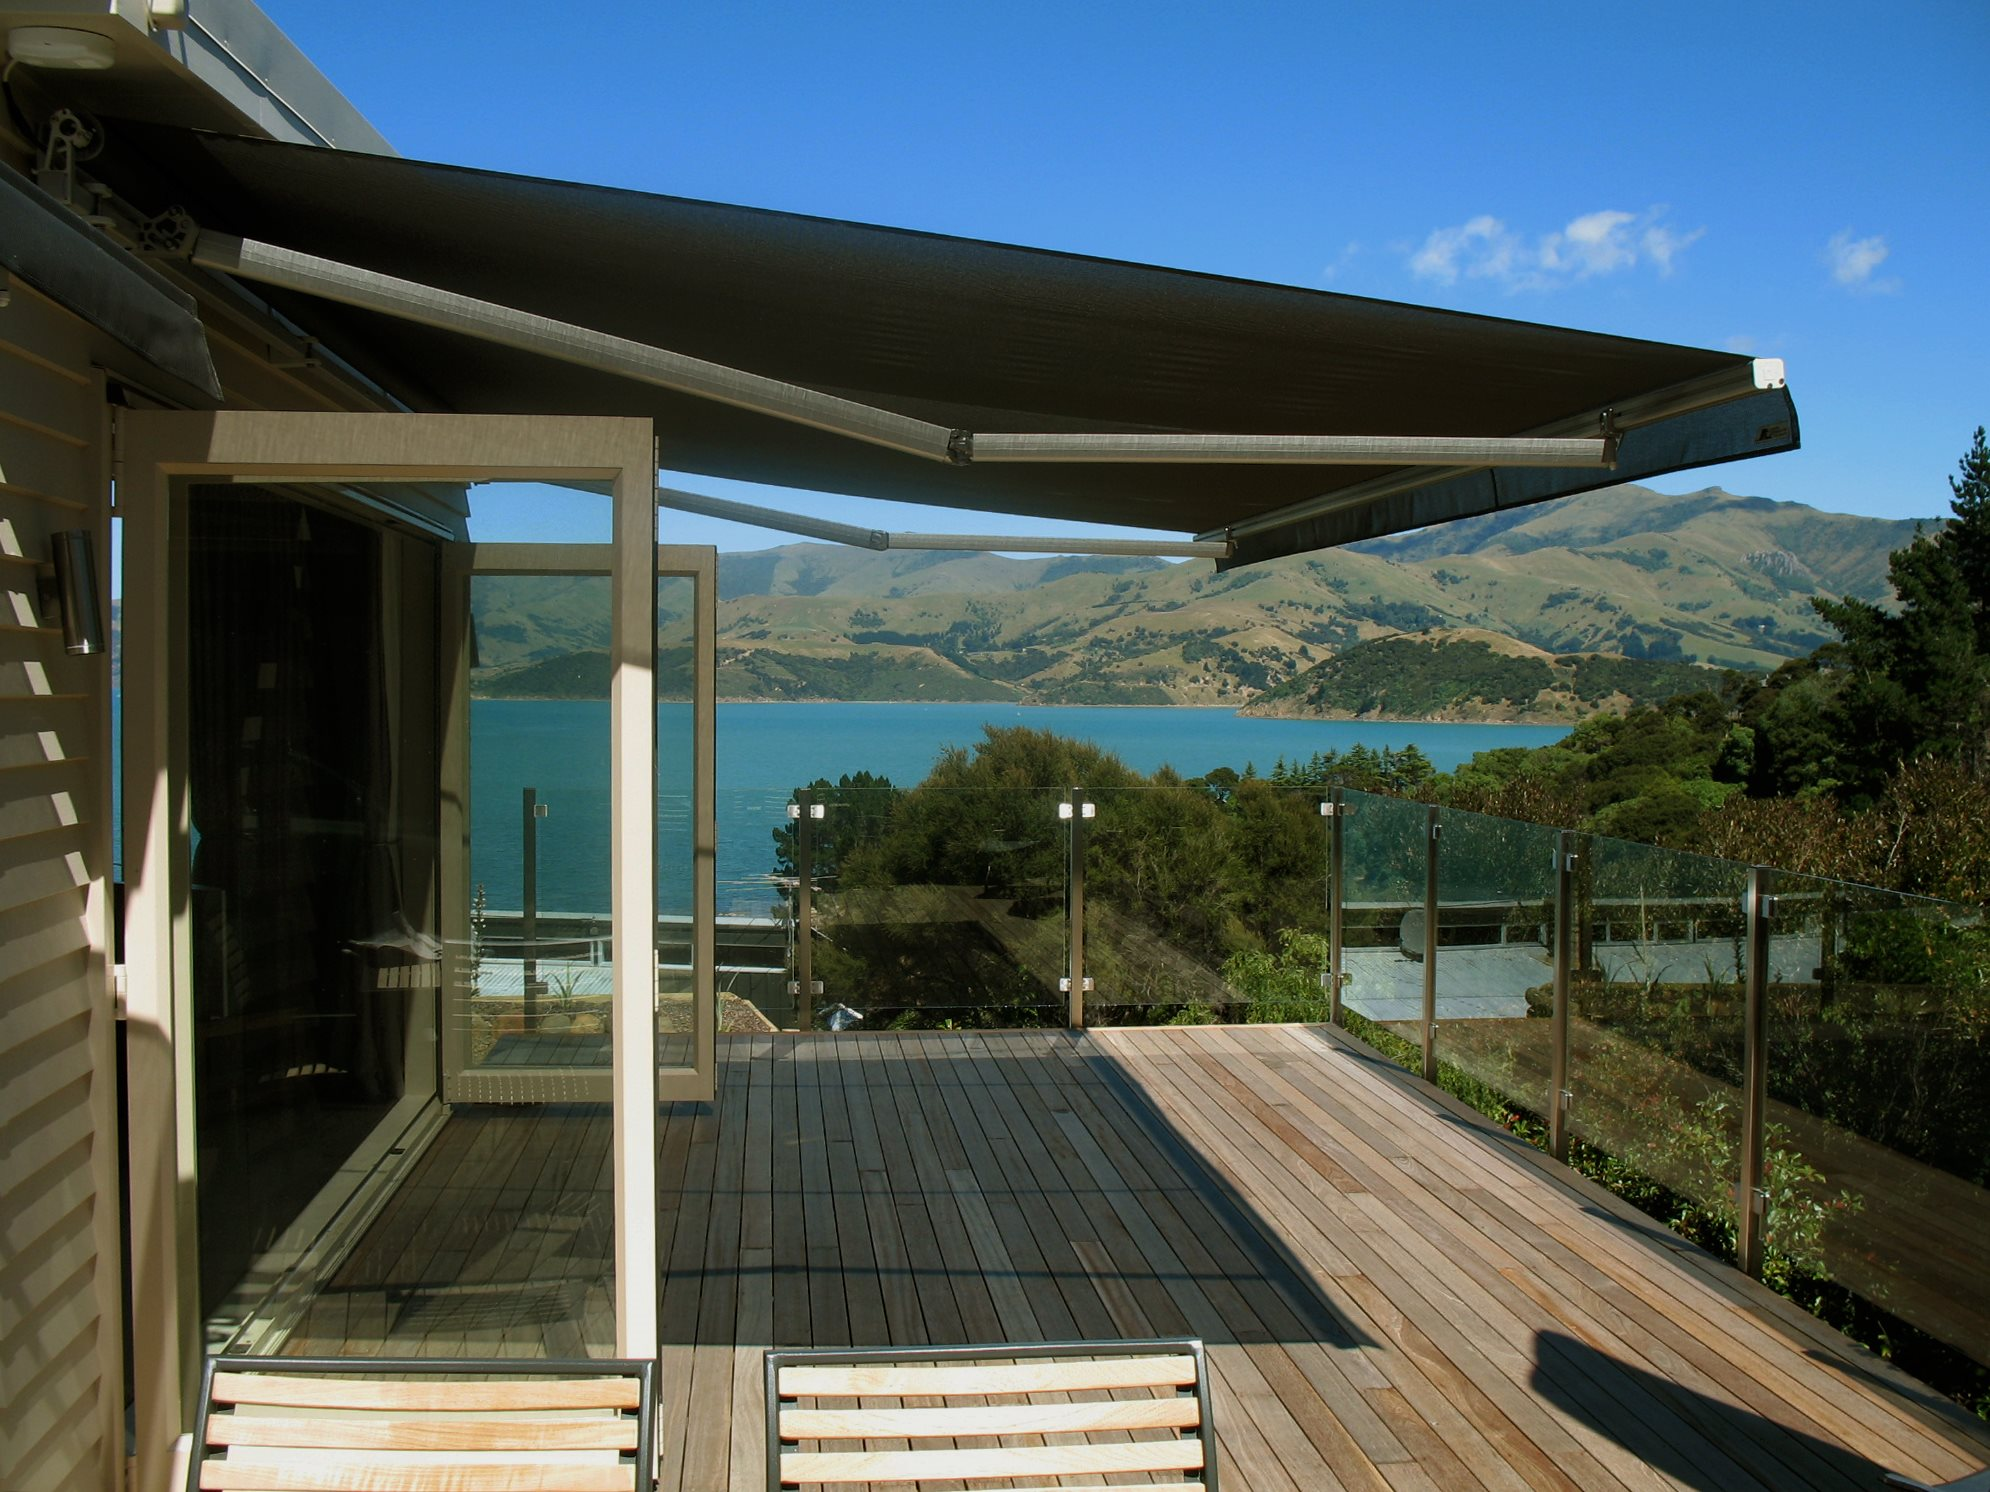 Euro Retractable awning open over balcony beside lake